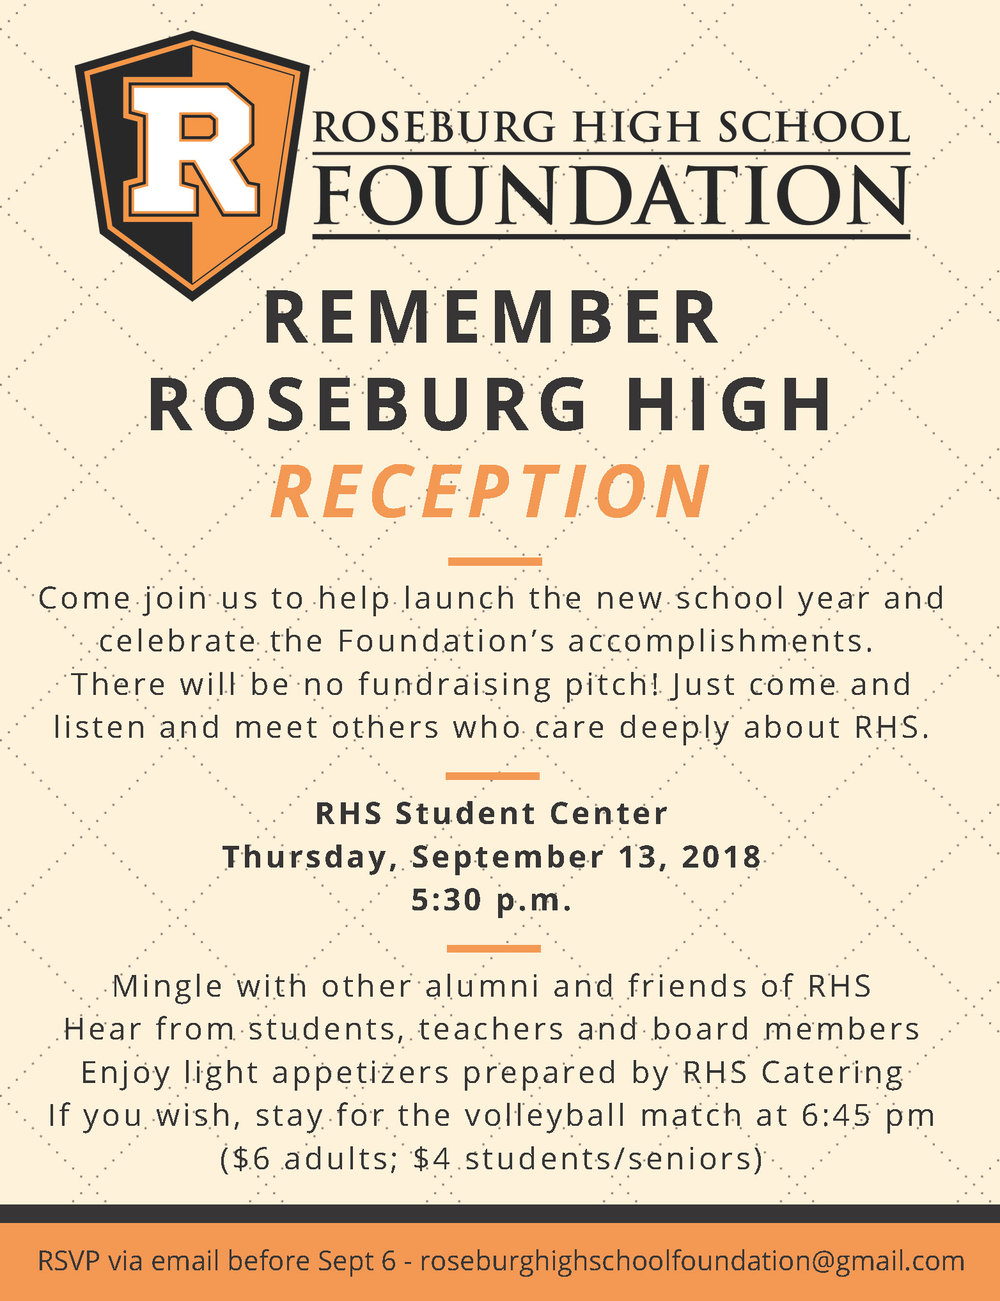 RHS Foundation Kickoff Reception